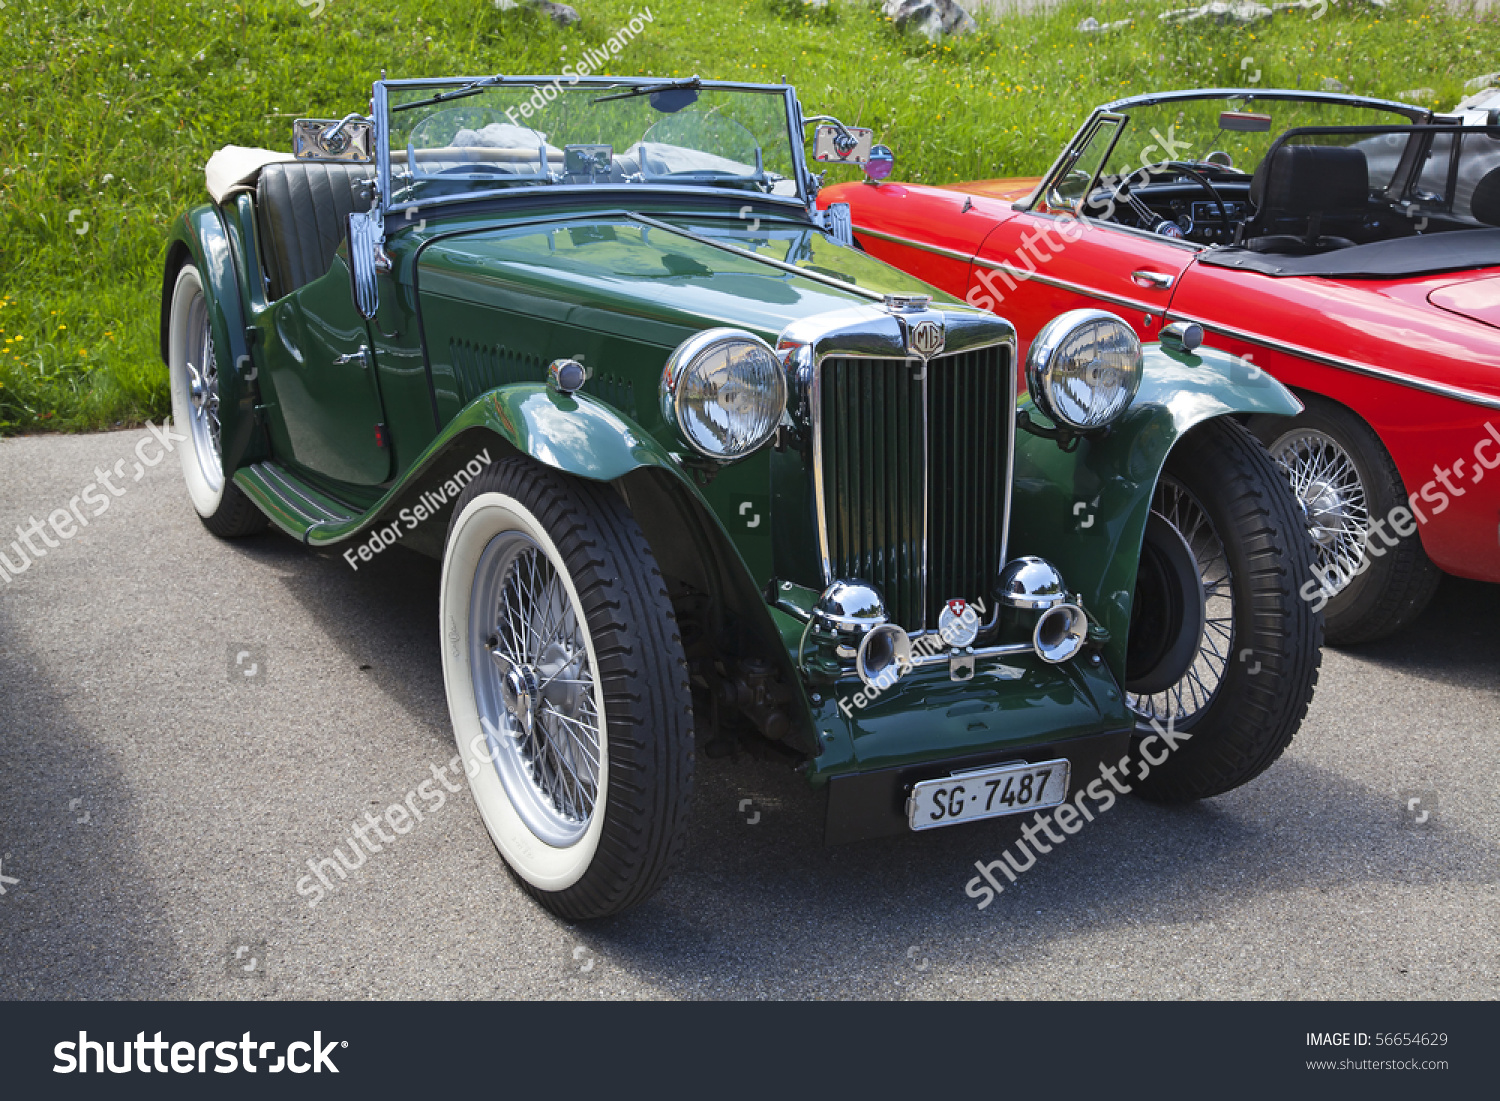 Schwaegalp June 27 Old Racing Mg Stock Photo 56654629 - Shutterstock